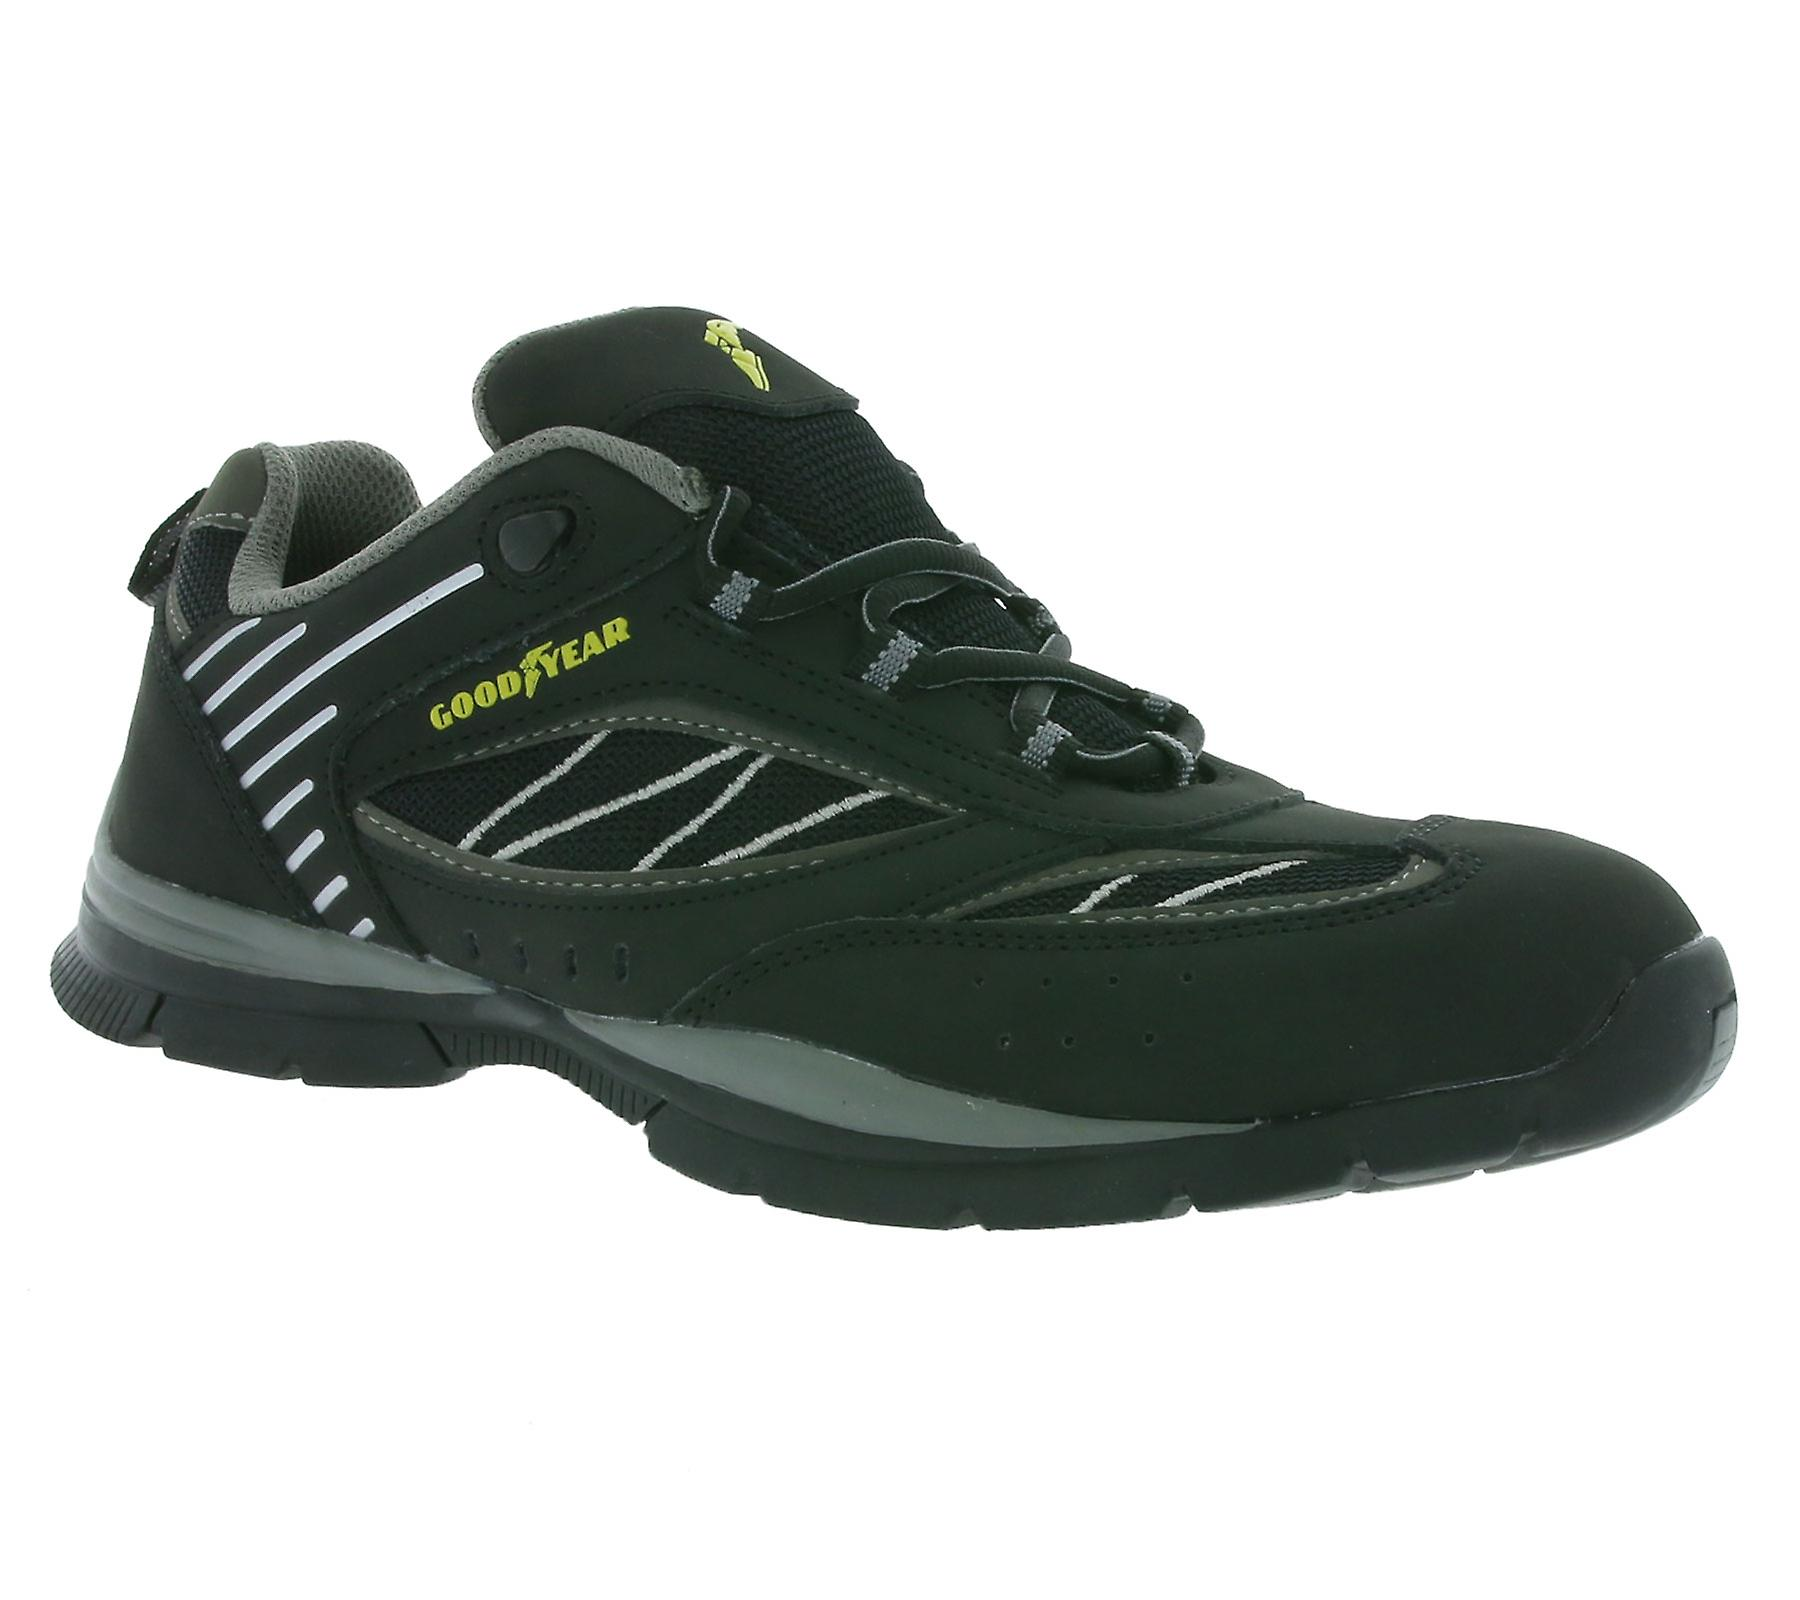 GOOD black YEAR S1P safety shoes black GOOD 4a7f9c